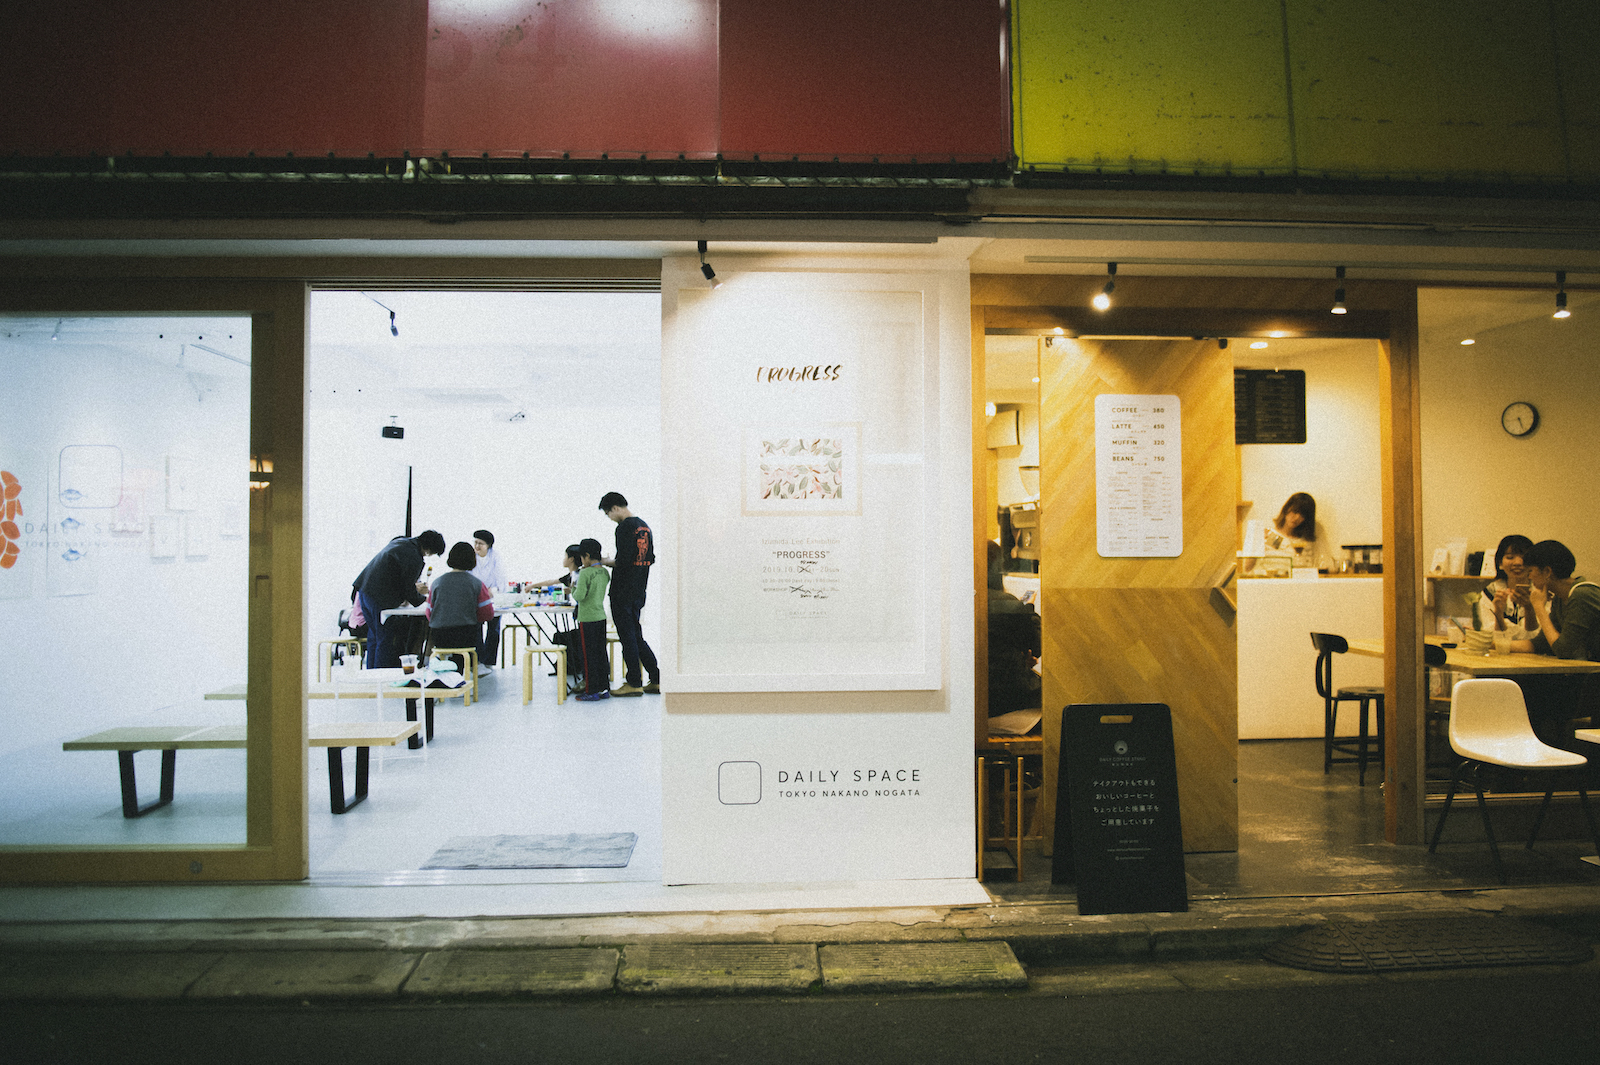 Coffee Standの真横にオープンした「DAILY SPACE」